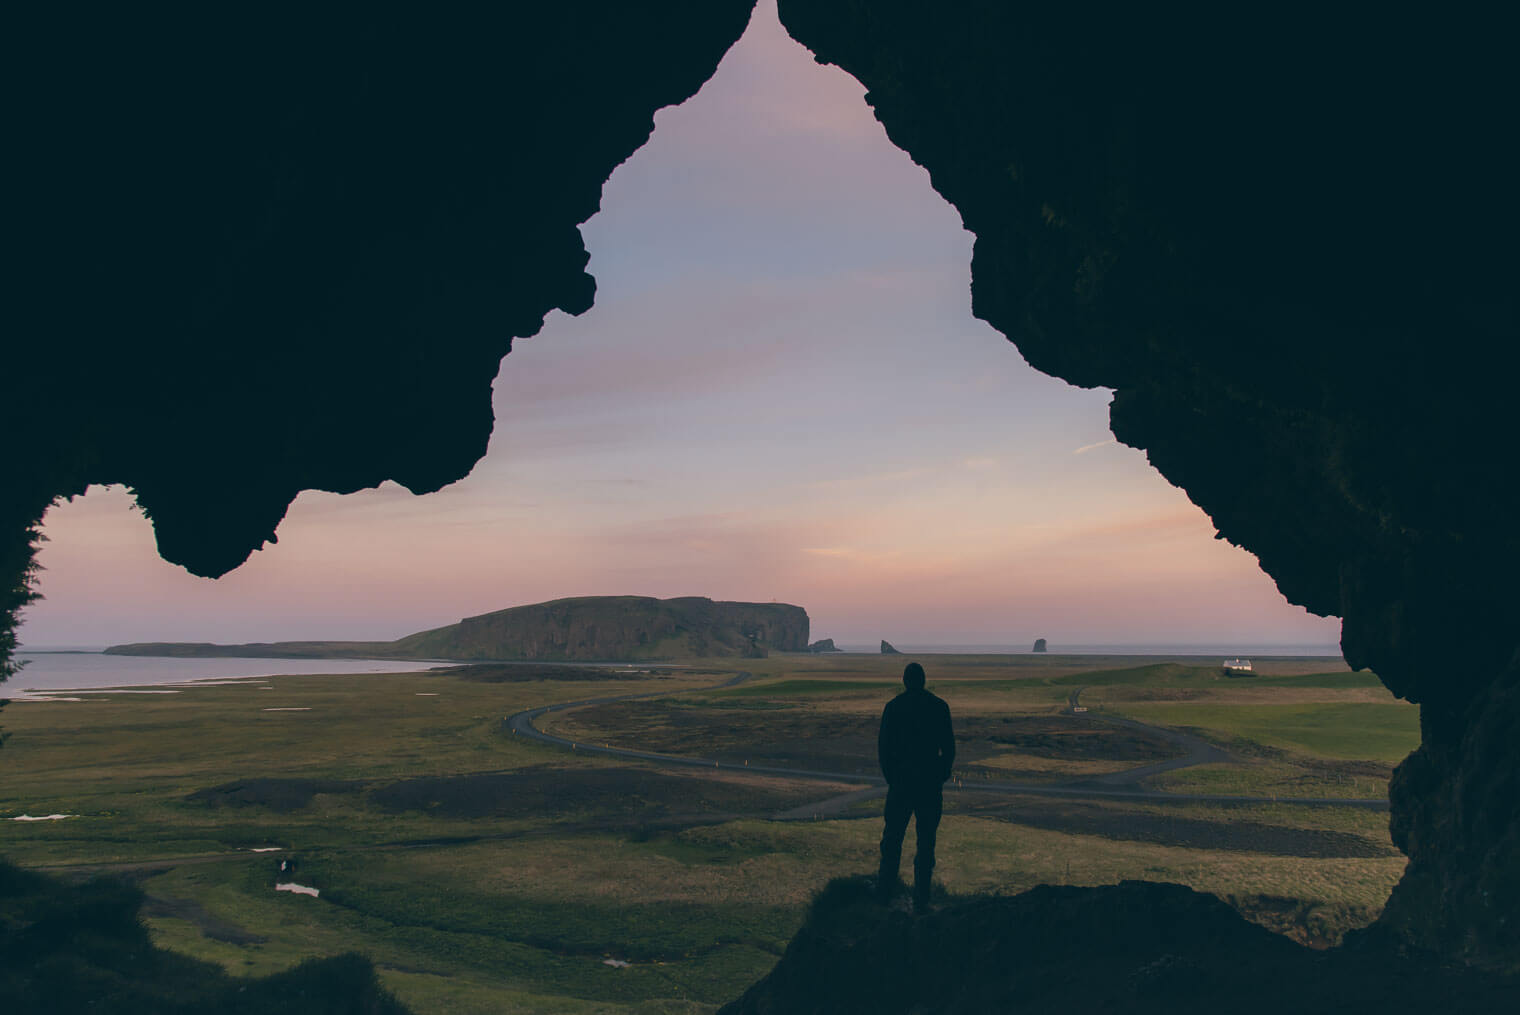 Northlandscapes Photography - Jan Erik Waider (Iceland)